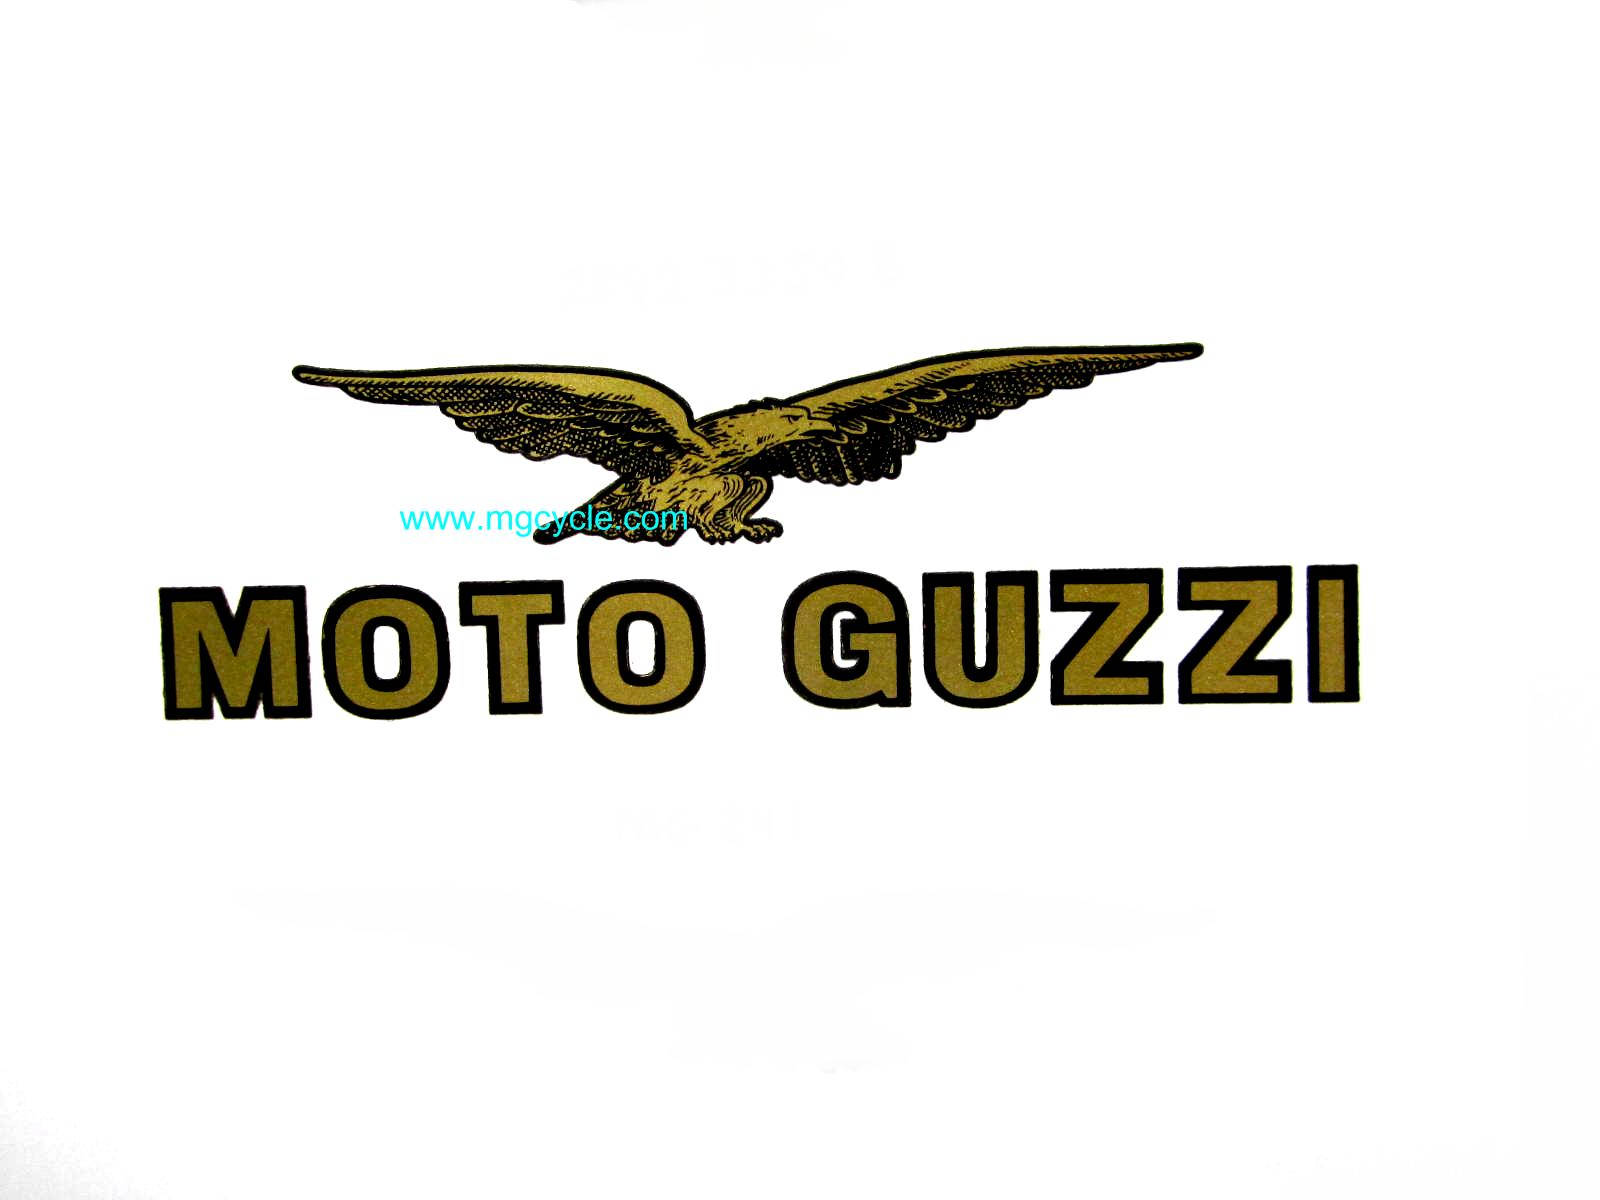 Fairing decal 850 LeMansIII Imola V50 Monza, eagle faces right